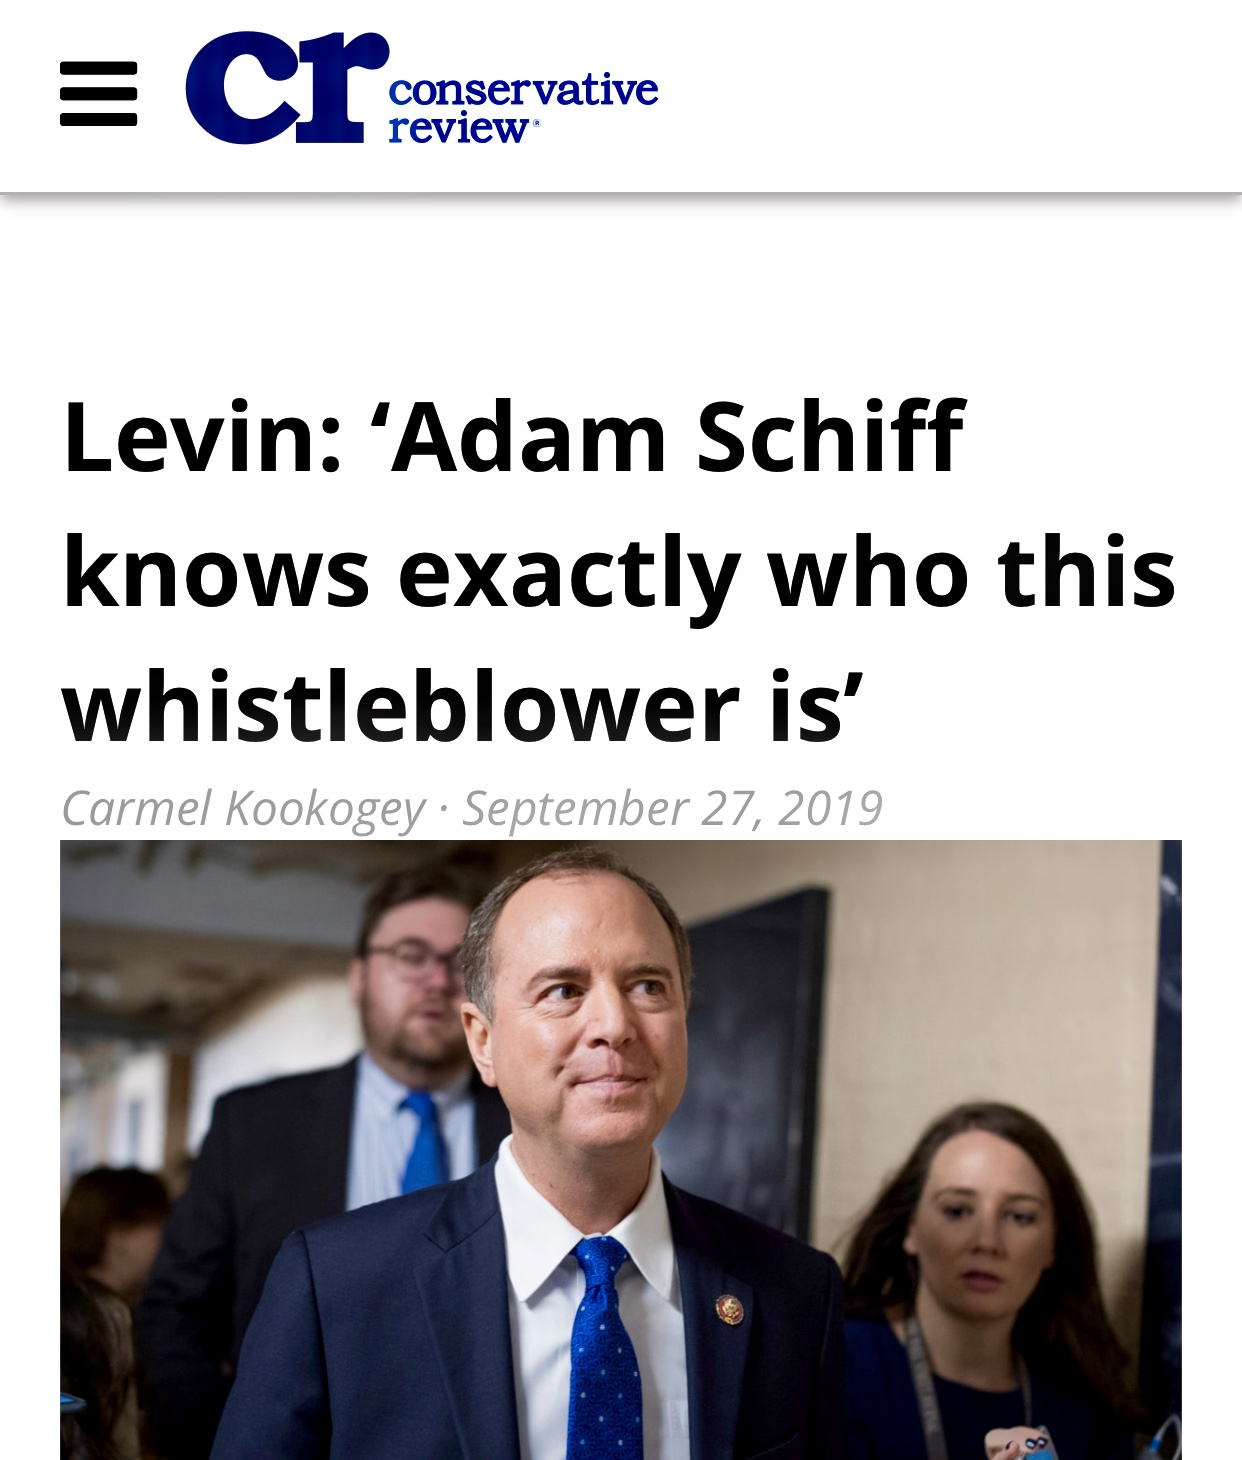 Levin: 'Adam Schiff knows exactly who this whistleblower is' – Conservative Review